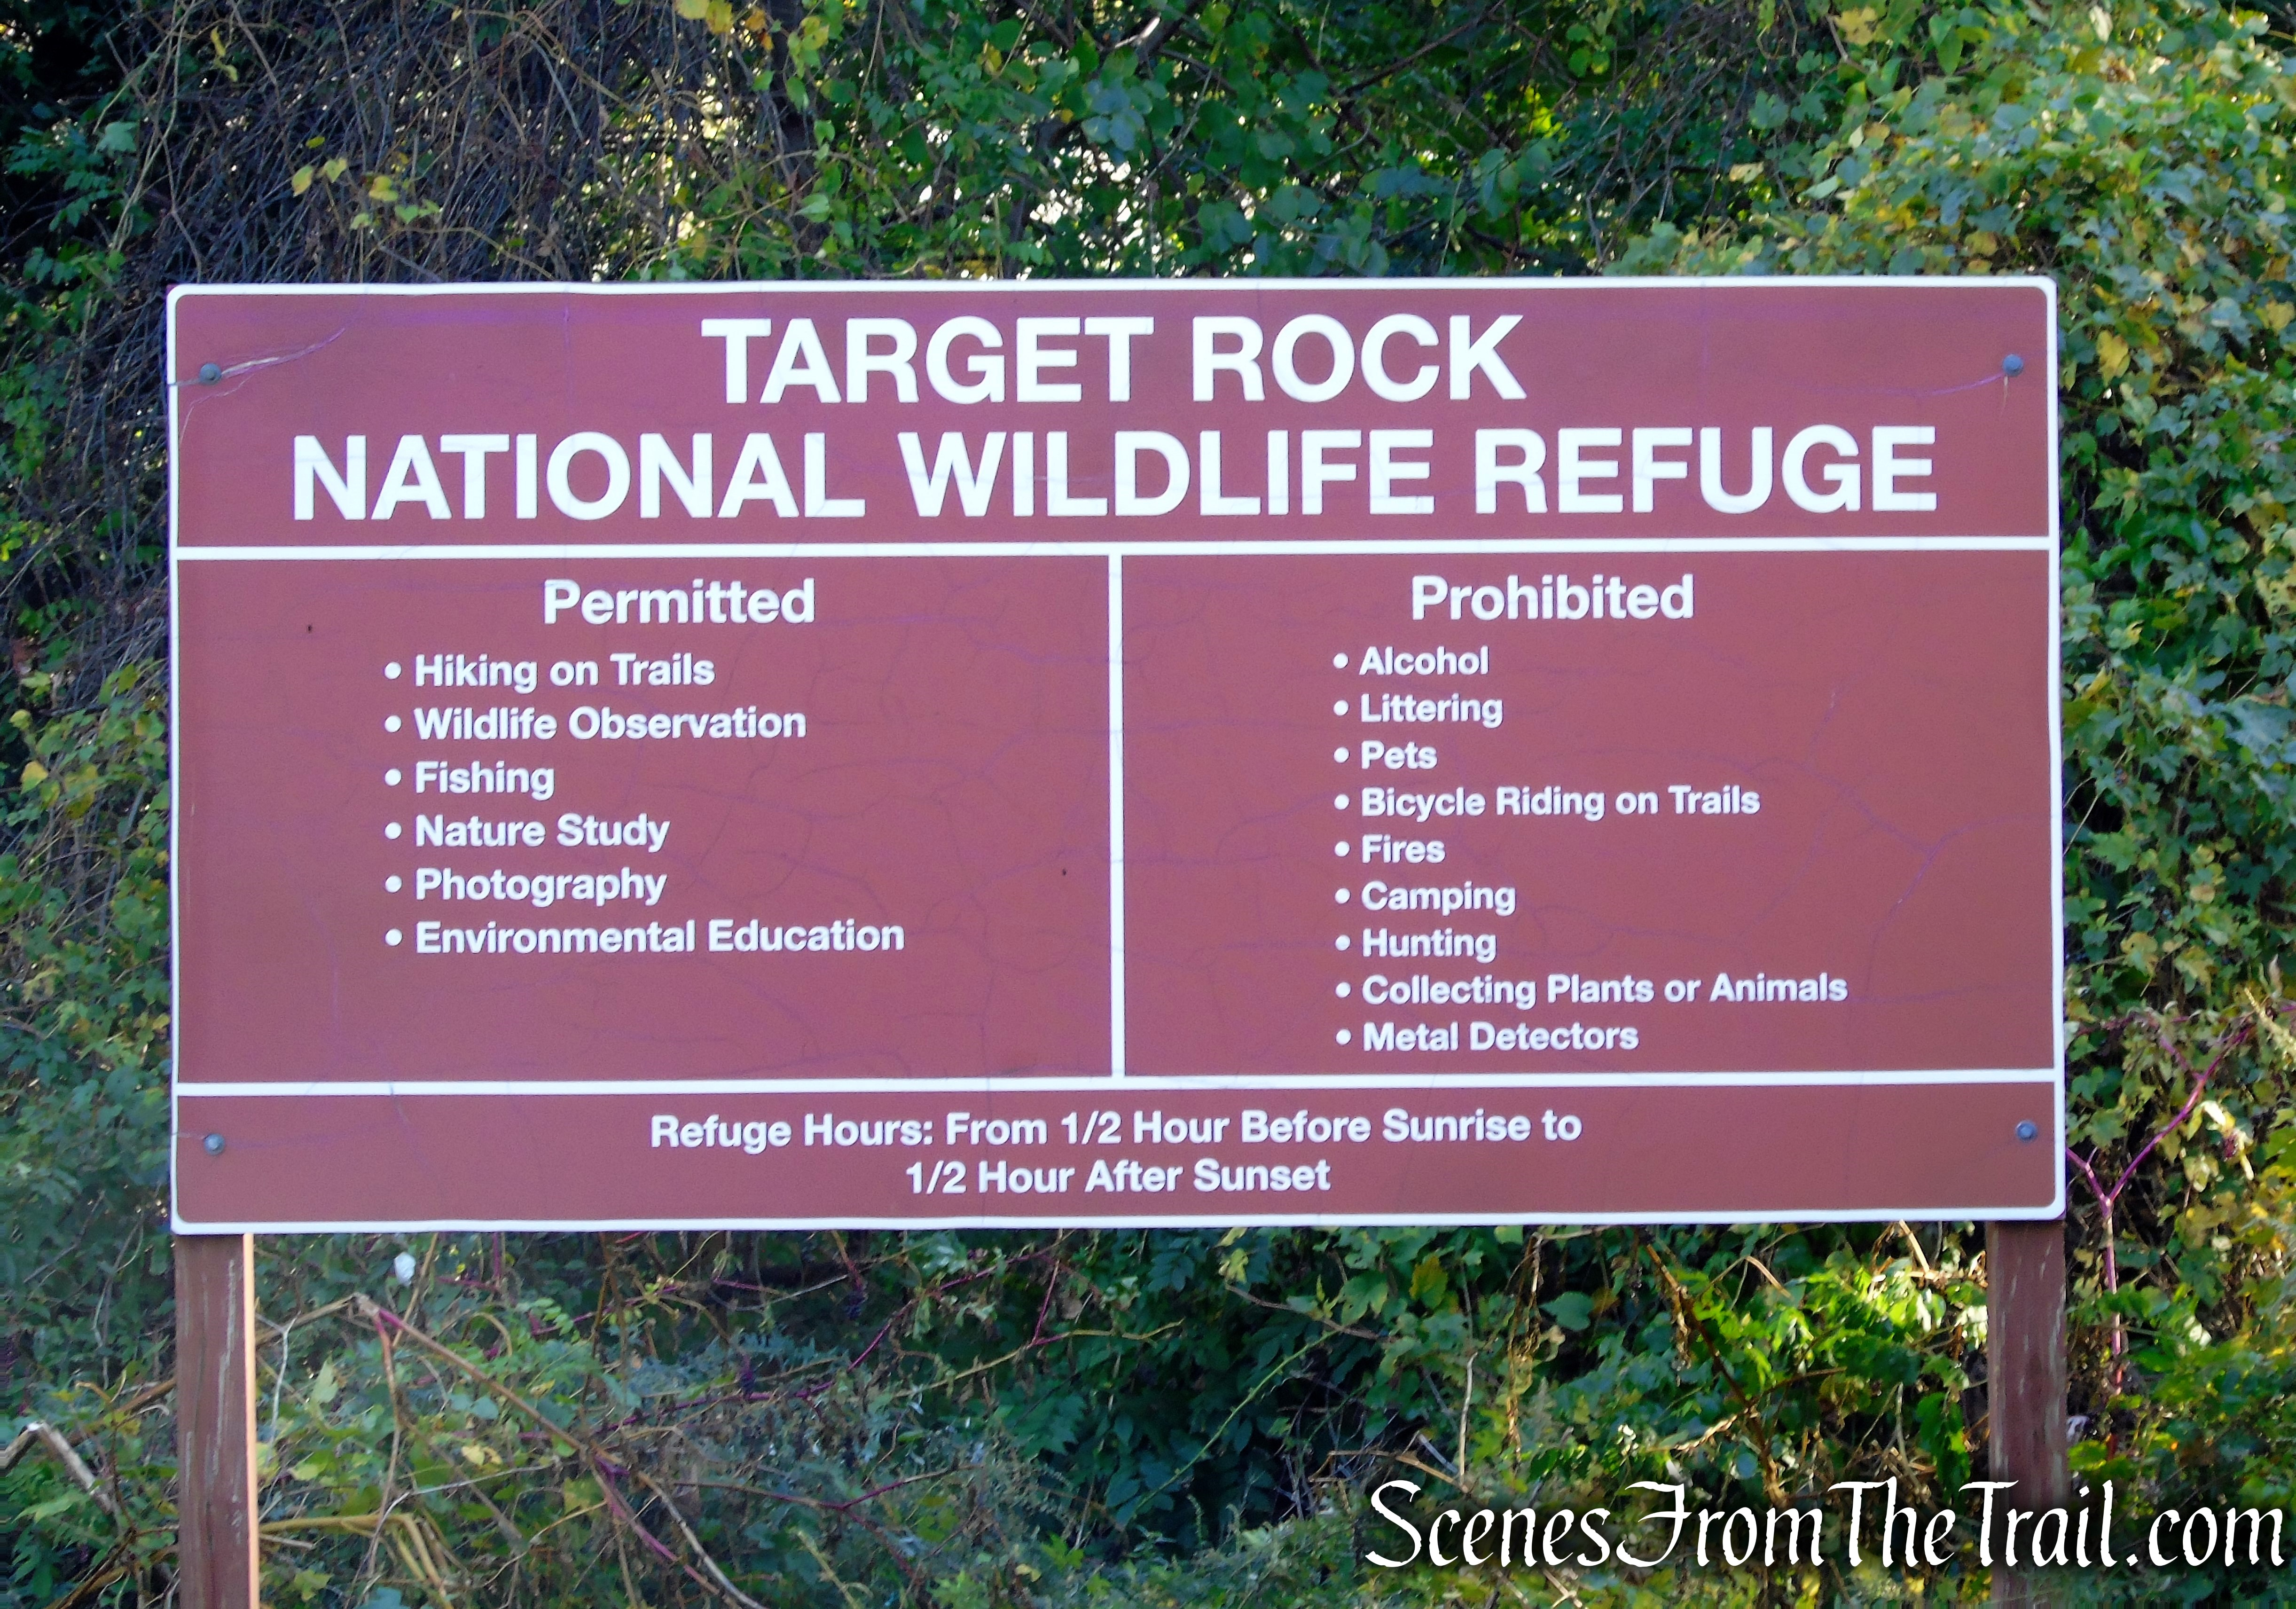 Target Rock National Wildlife Refuge